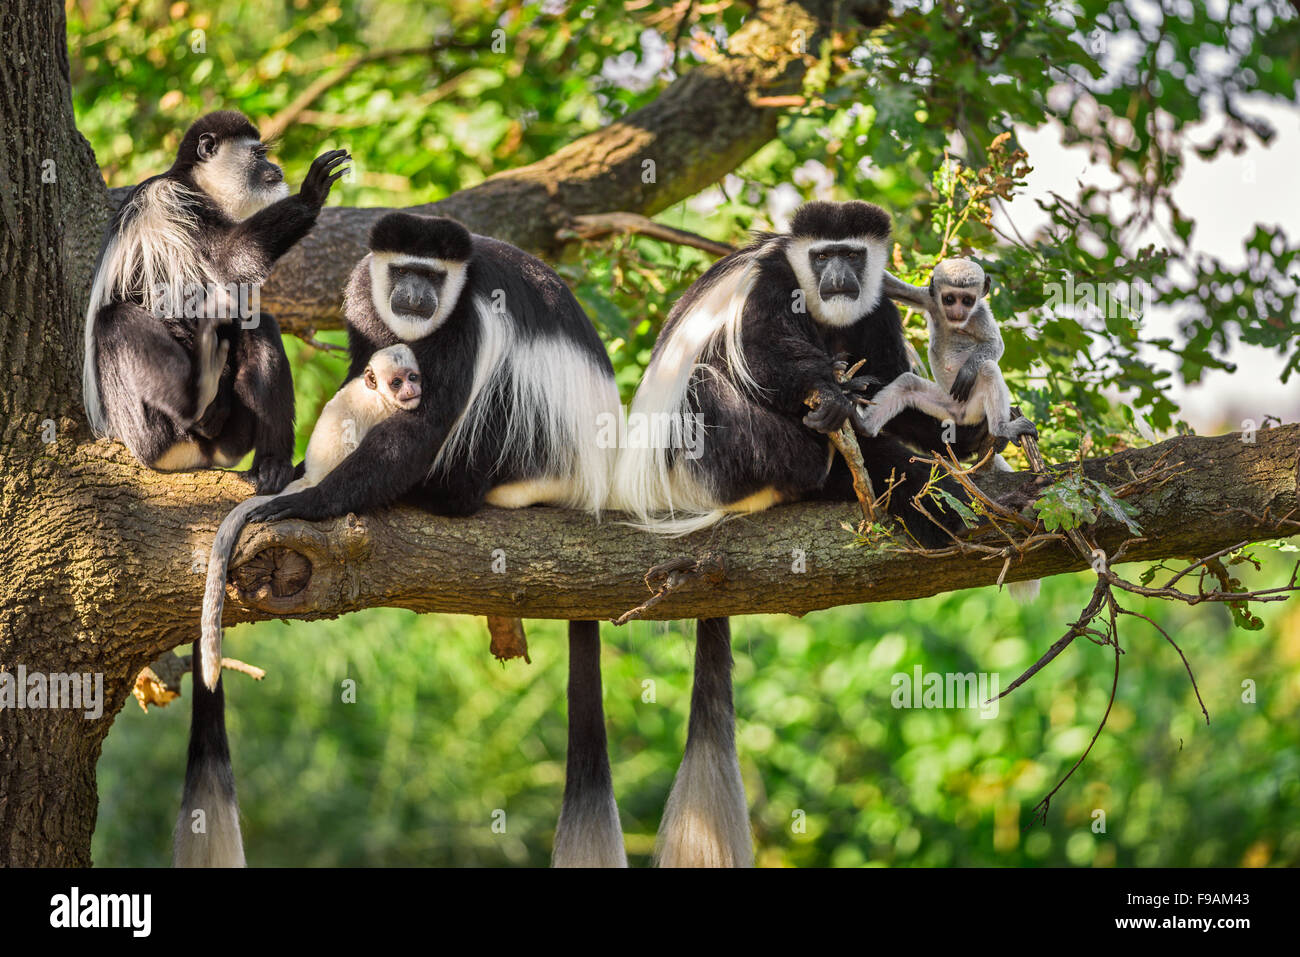 A troop of Mantled guereza monkeys (Colobus guereza) plays with two newborns - Stock Image